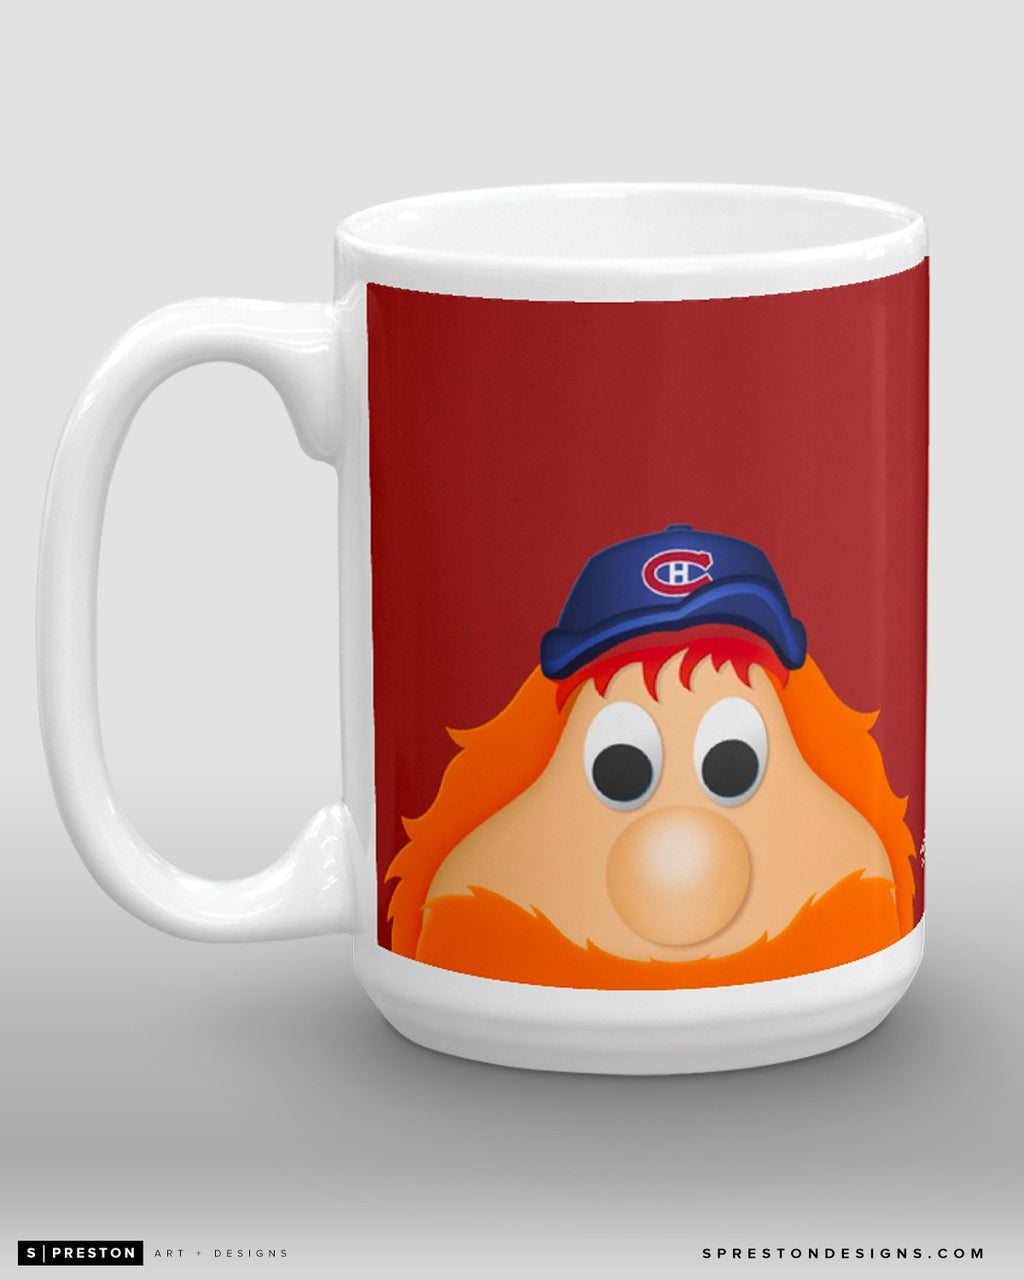 Minimalist Youppi! Coffee Mug - NHL Licensed - Montreal Canadiens Mascot